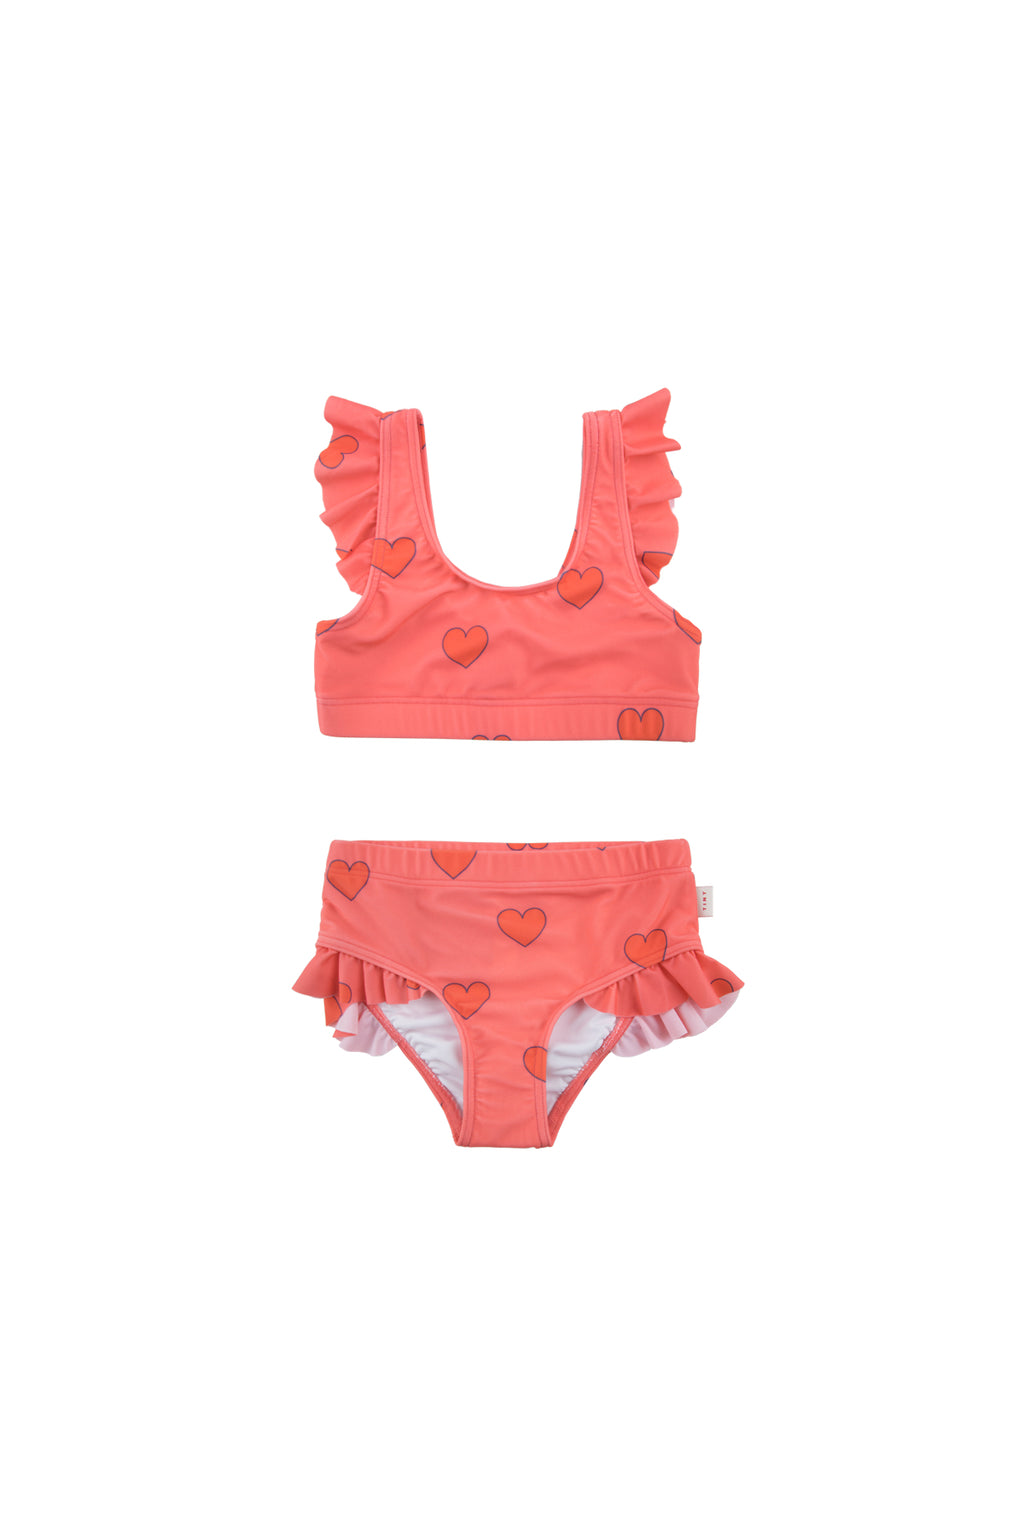 Tiny Cottons Hearts Swim Set - Light Red/Red